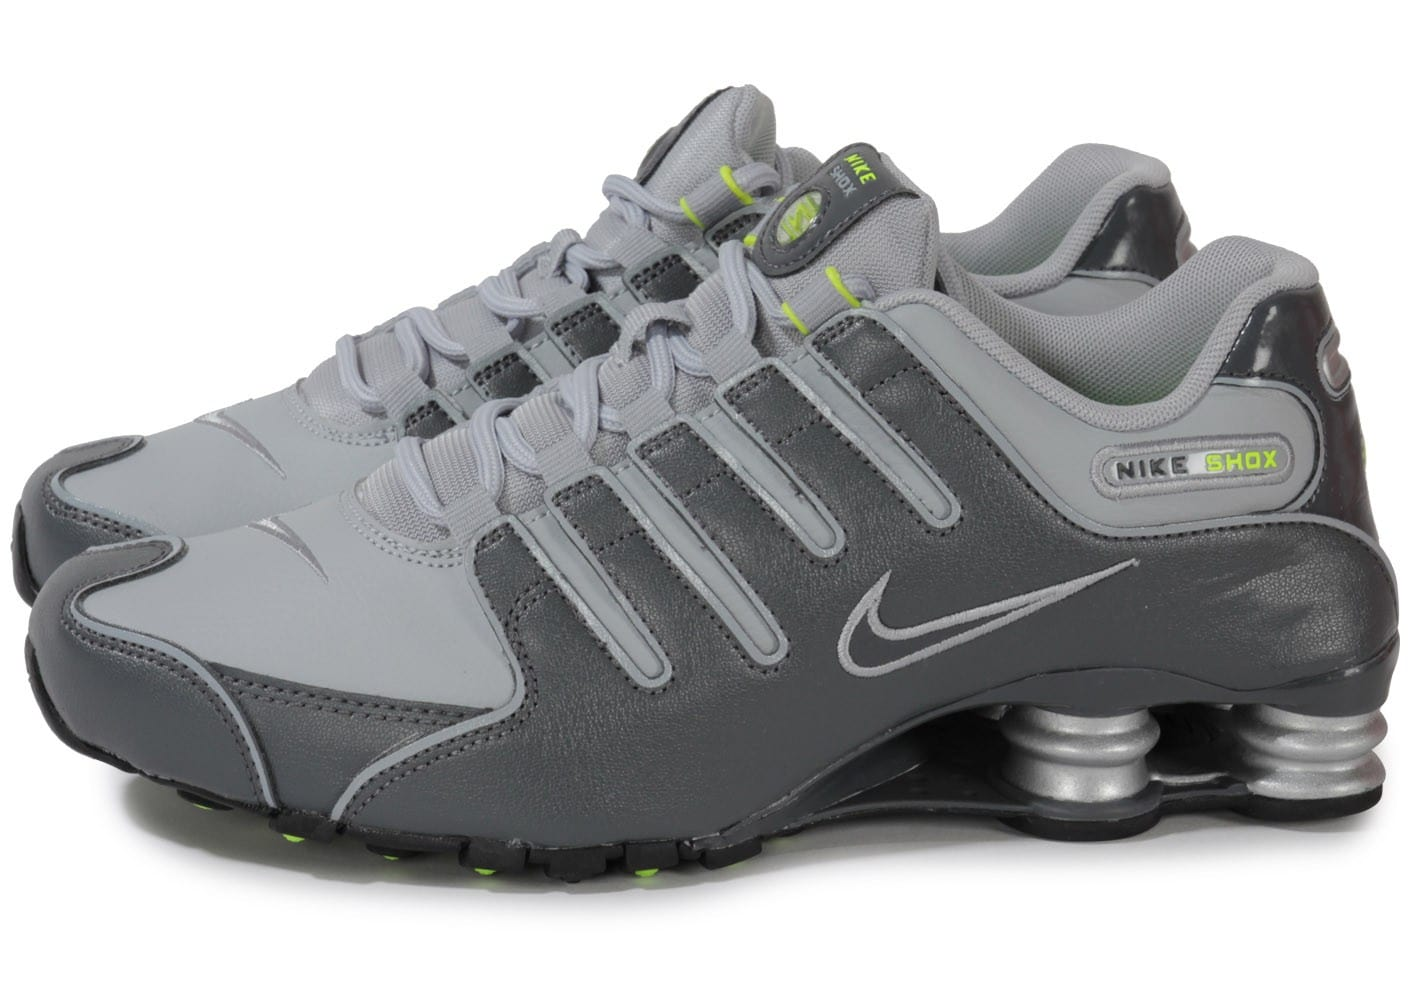 best supplier coupon codes casual shoes Nike Shox Nz Grise - Chaussures Baskets homme - Chausport